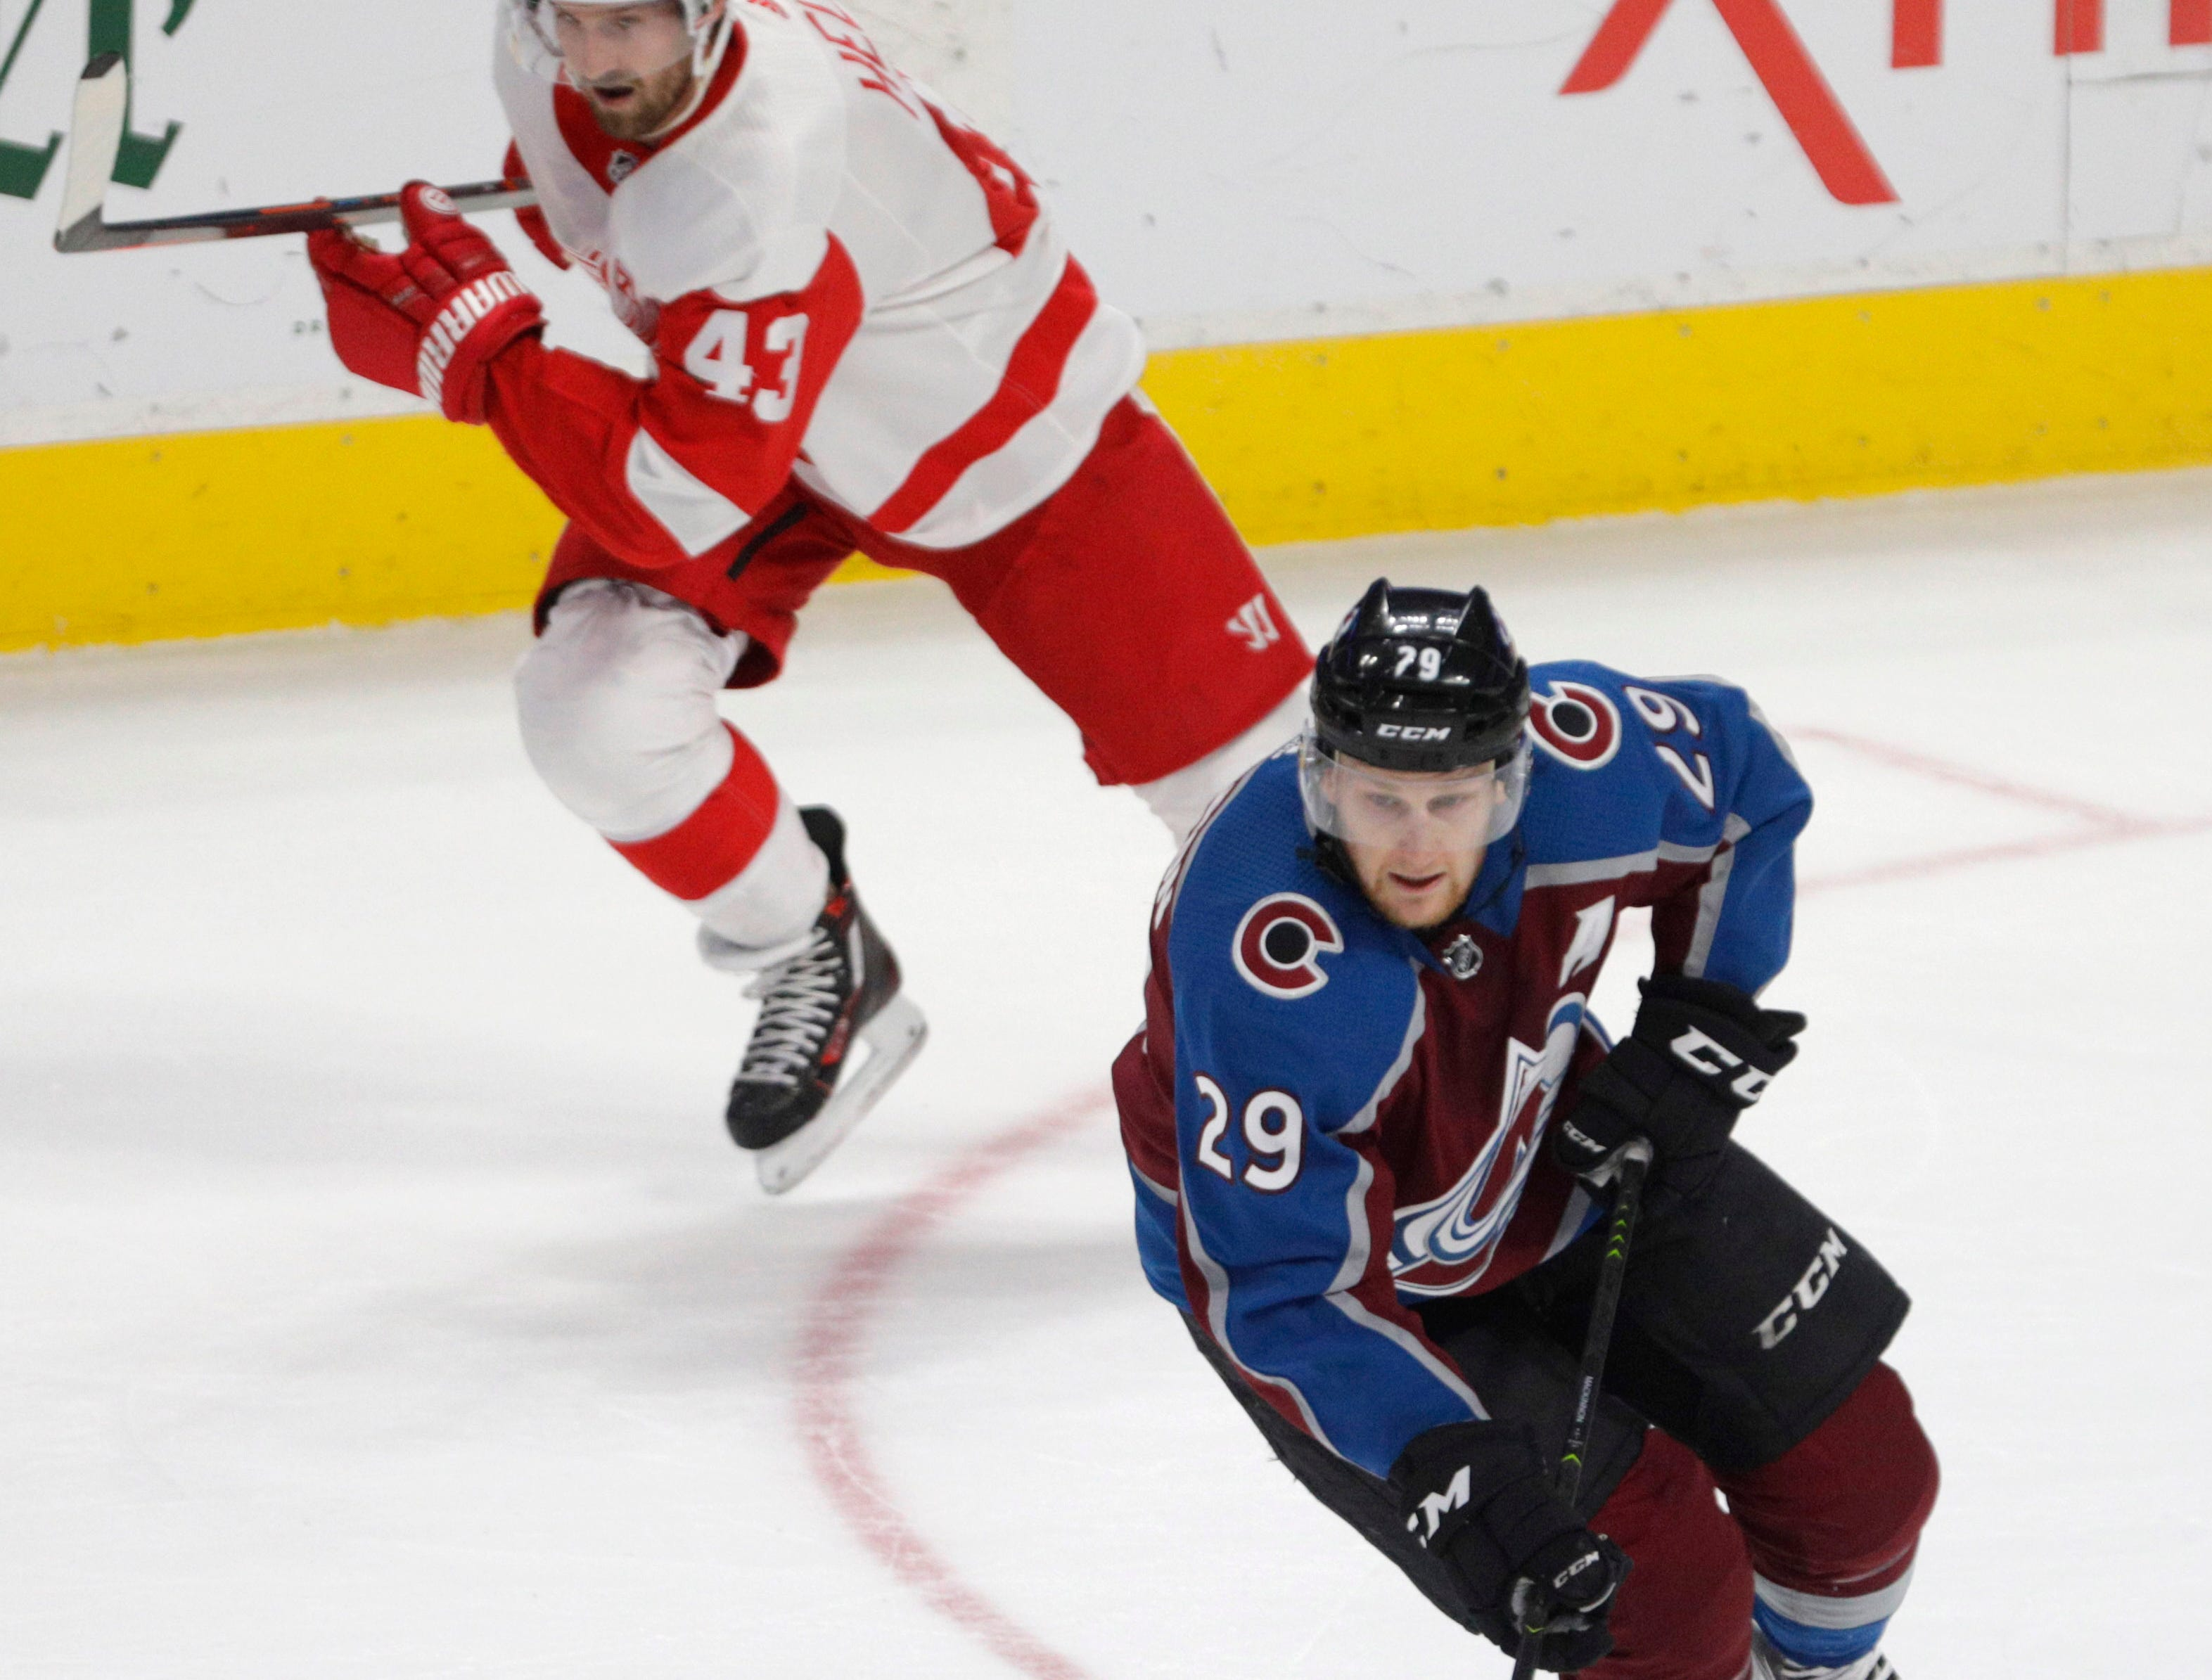 Colorado Avalanche center Nathan MacKinnon (29) skates with the puck as Detroit Red Wings left wing Darren Helm (43) pursues during the third period.